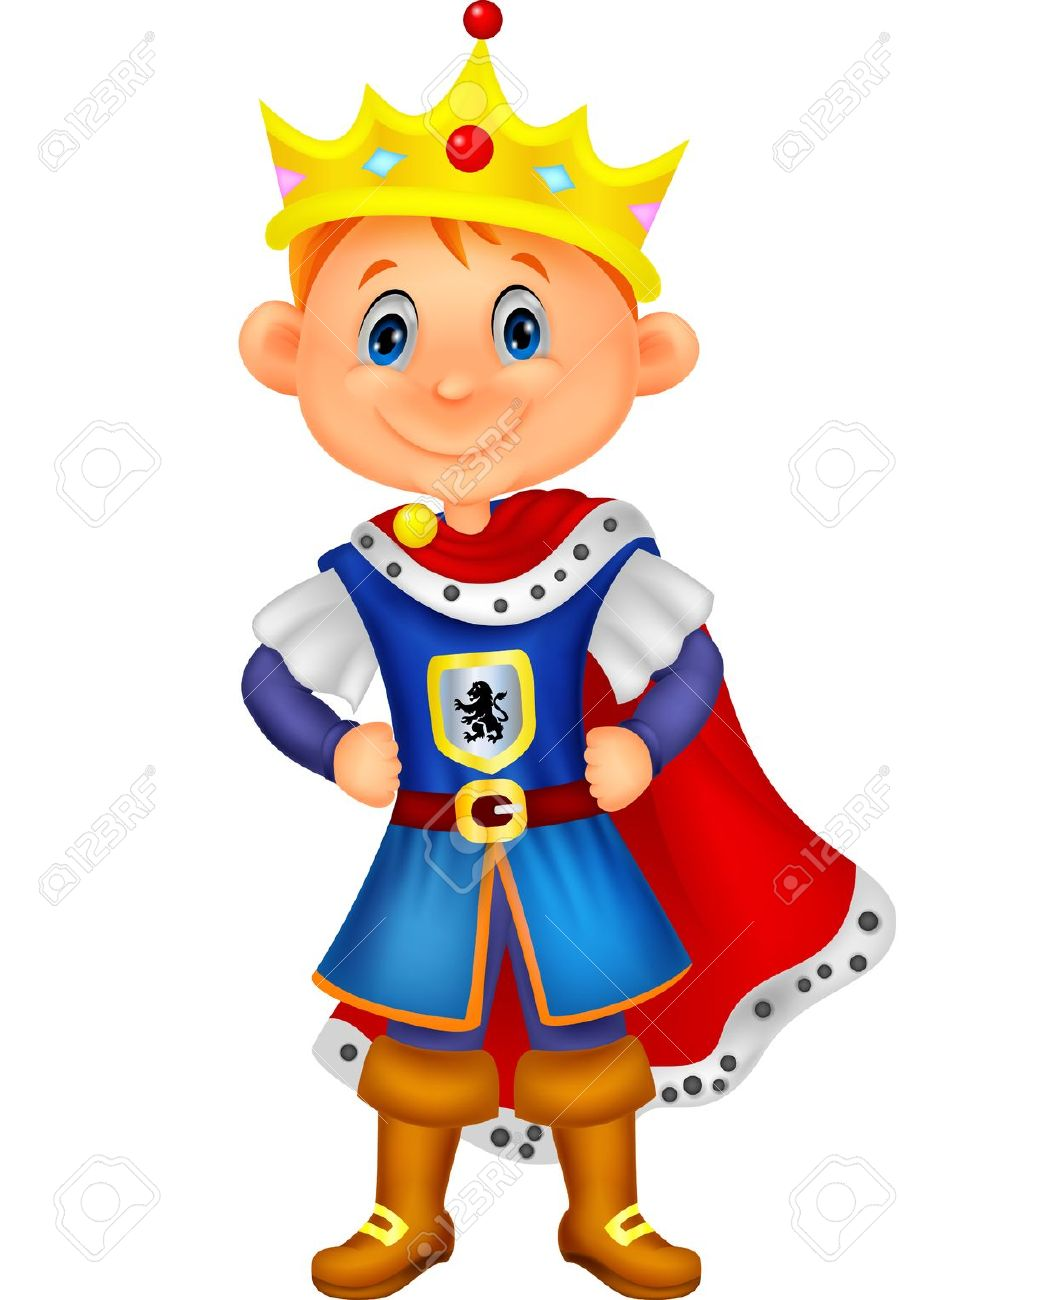 prince clip art. Free cute king on a throne clipart